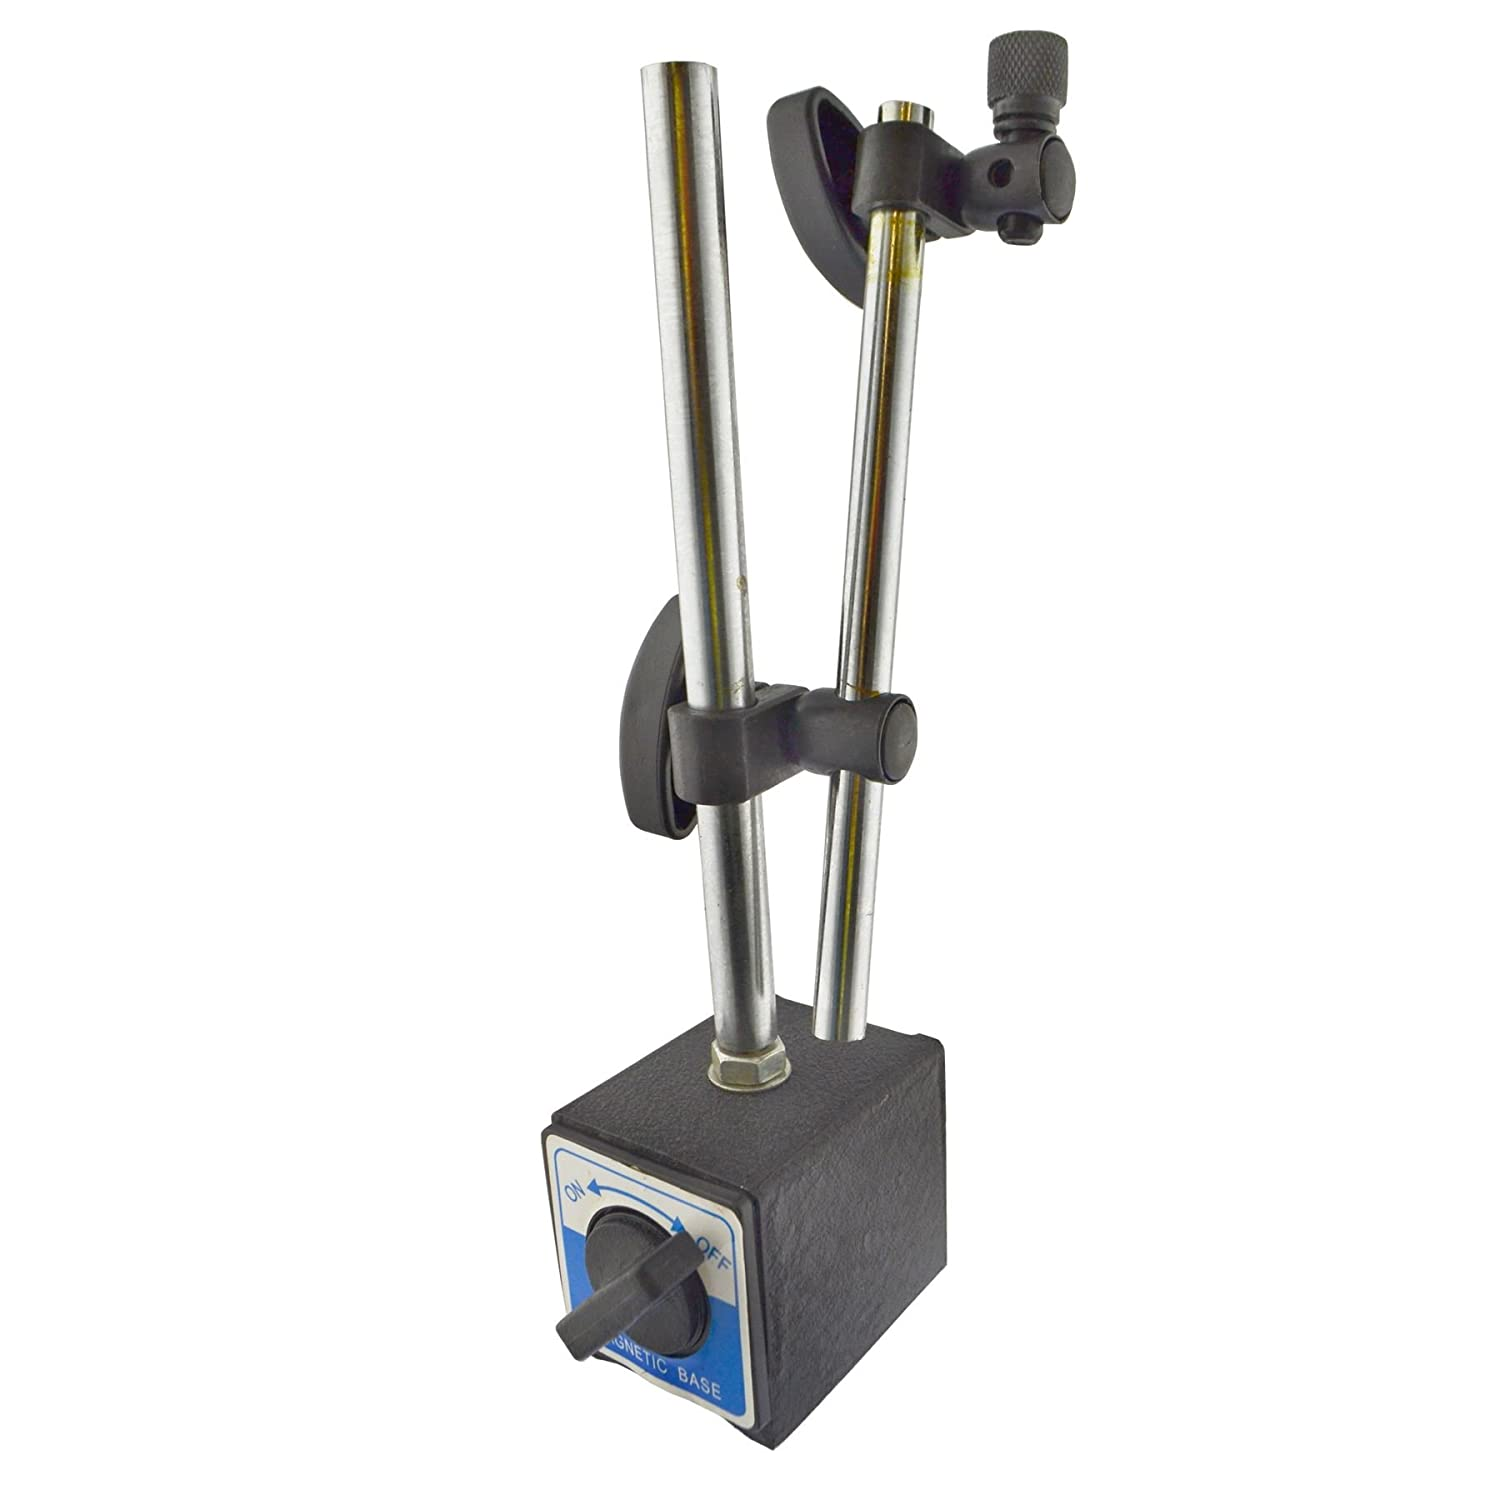 Magnetic Stand / Base For Dial Test Indicator / DTI Gauge By BERGEN AT426 AB Tools